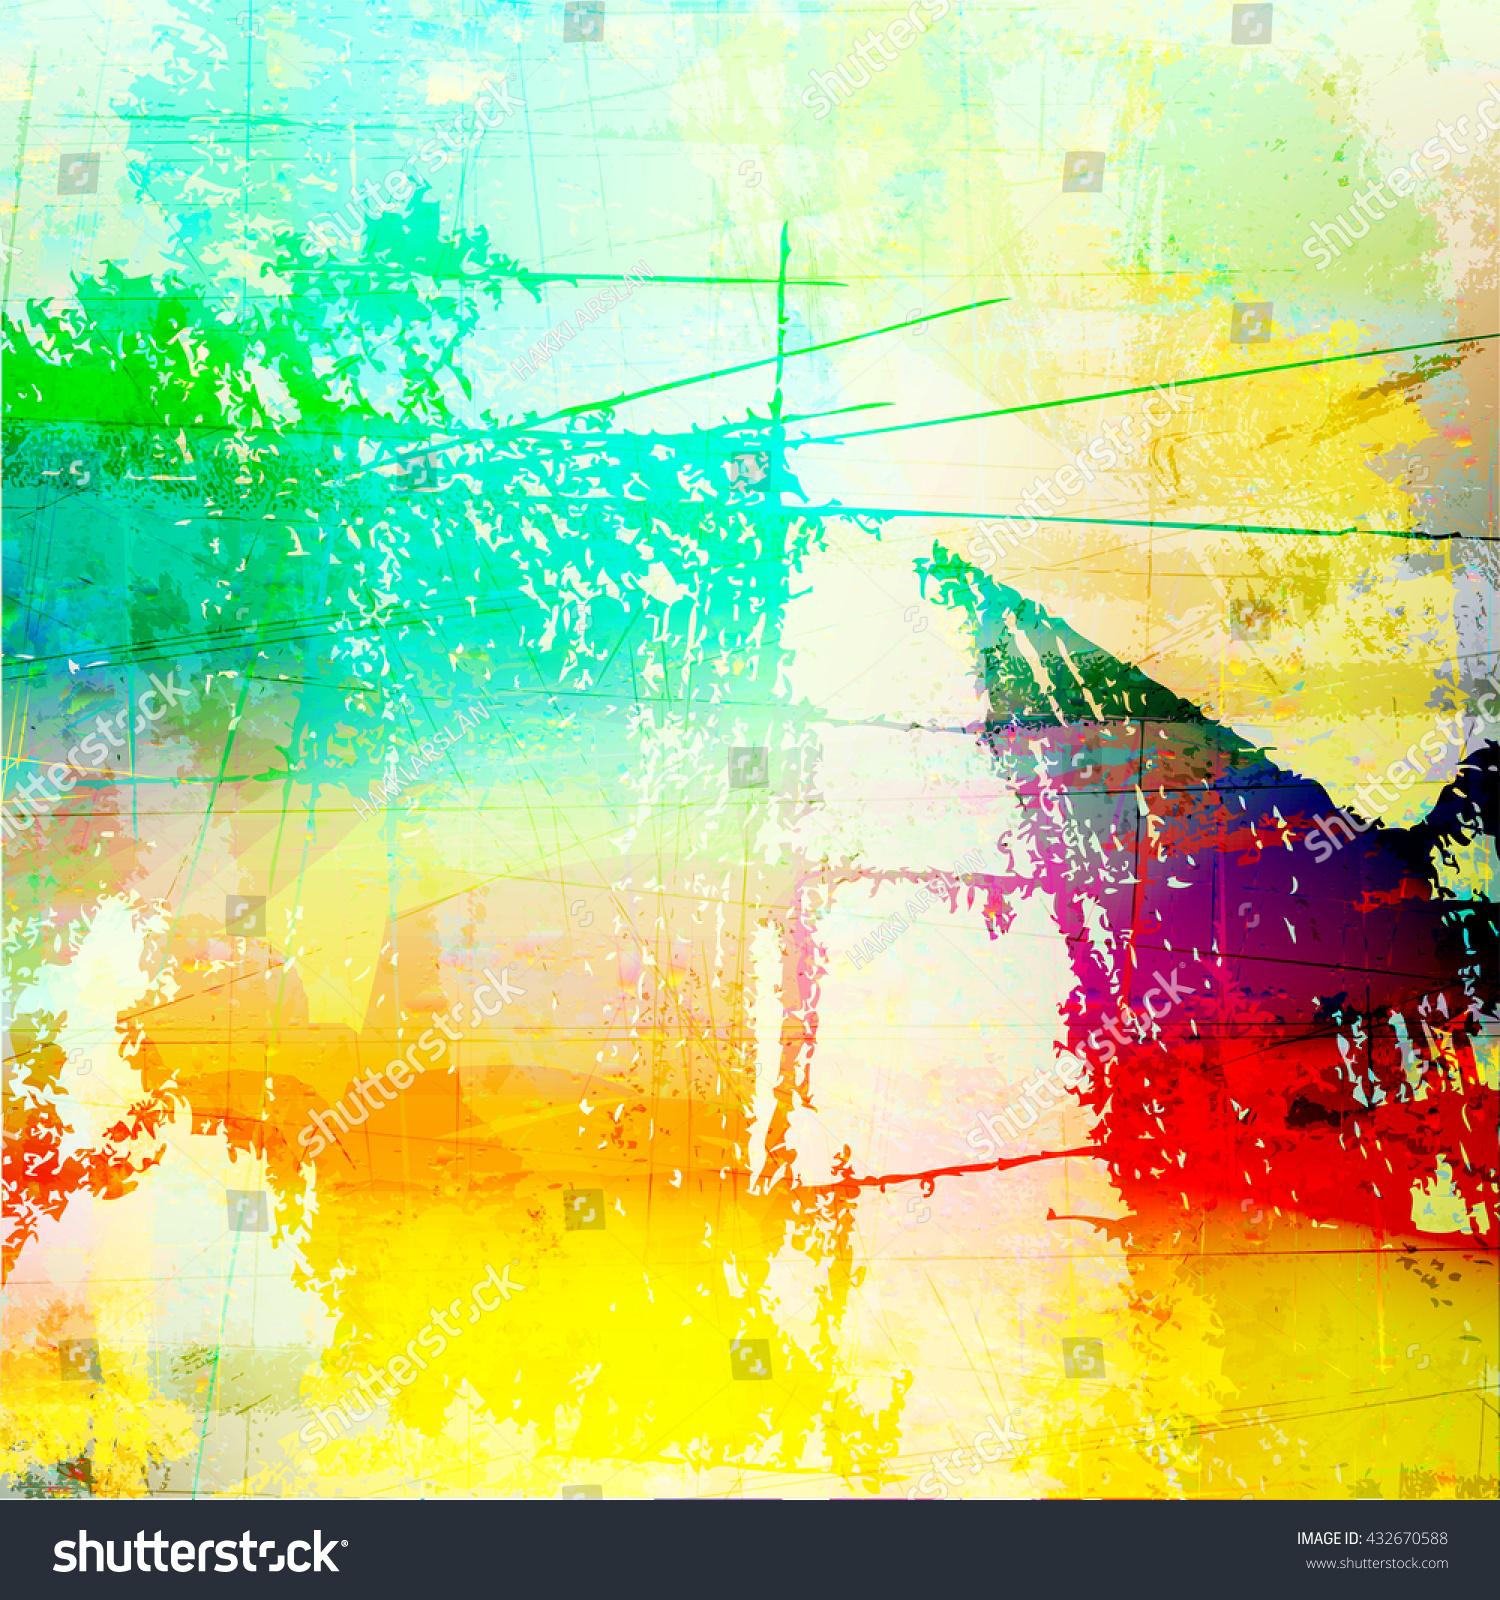 Grunge Style Abstract Color Splash Background Stock Vector (Royalty ...